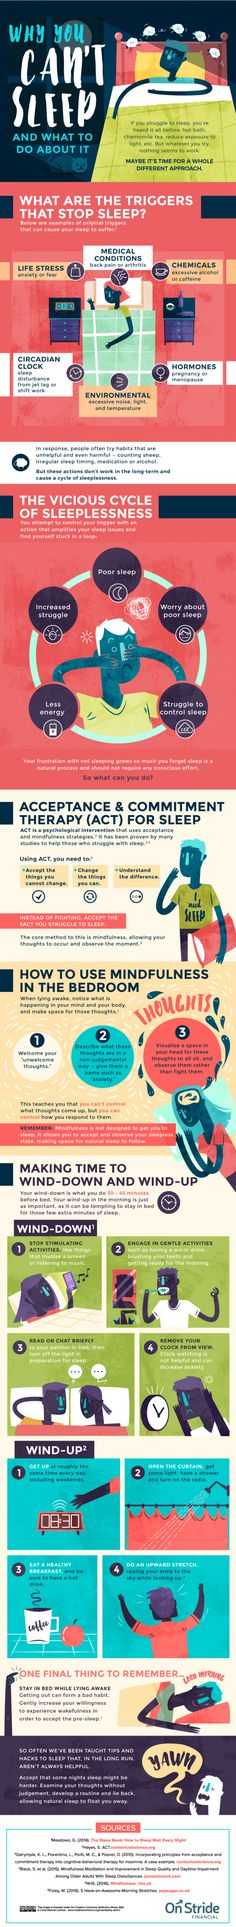 Tips and Tricks for Sleepless Nights | Daily Infographic